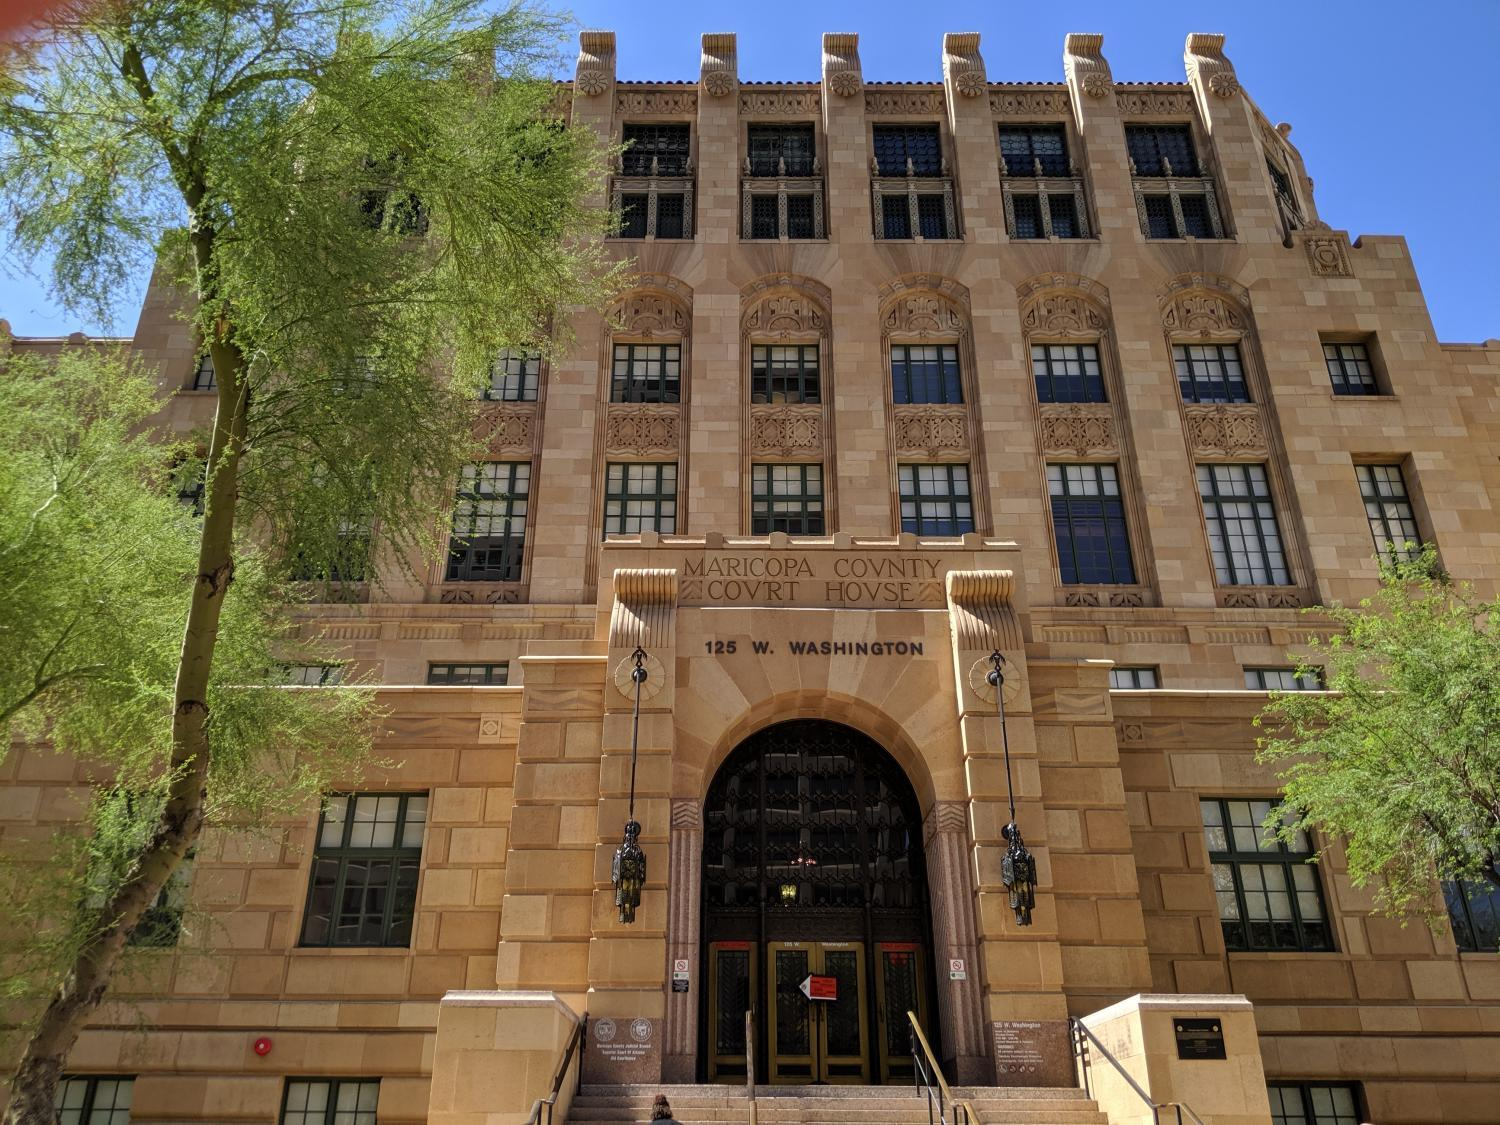 Maricopa County Courts Downtown Open Following APS Outage | KJZZ